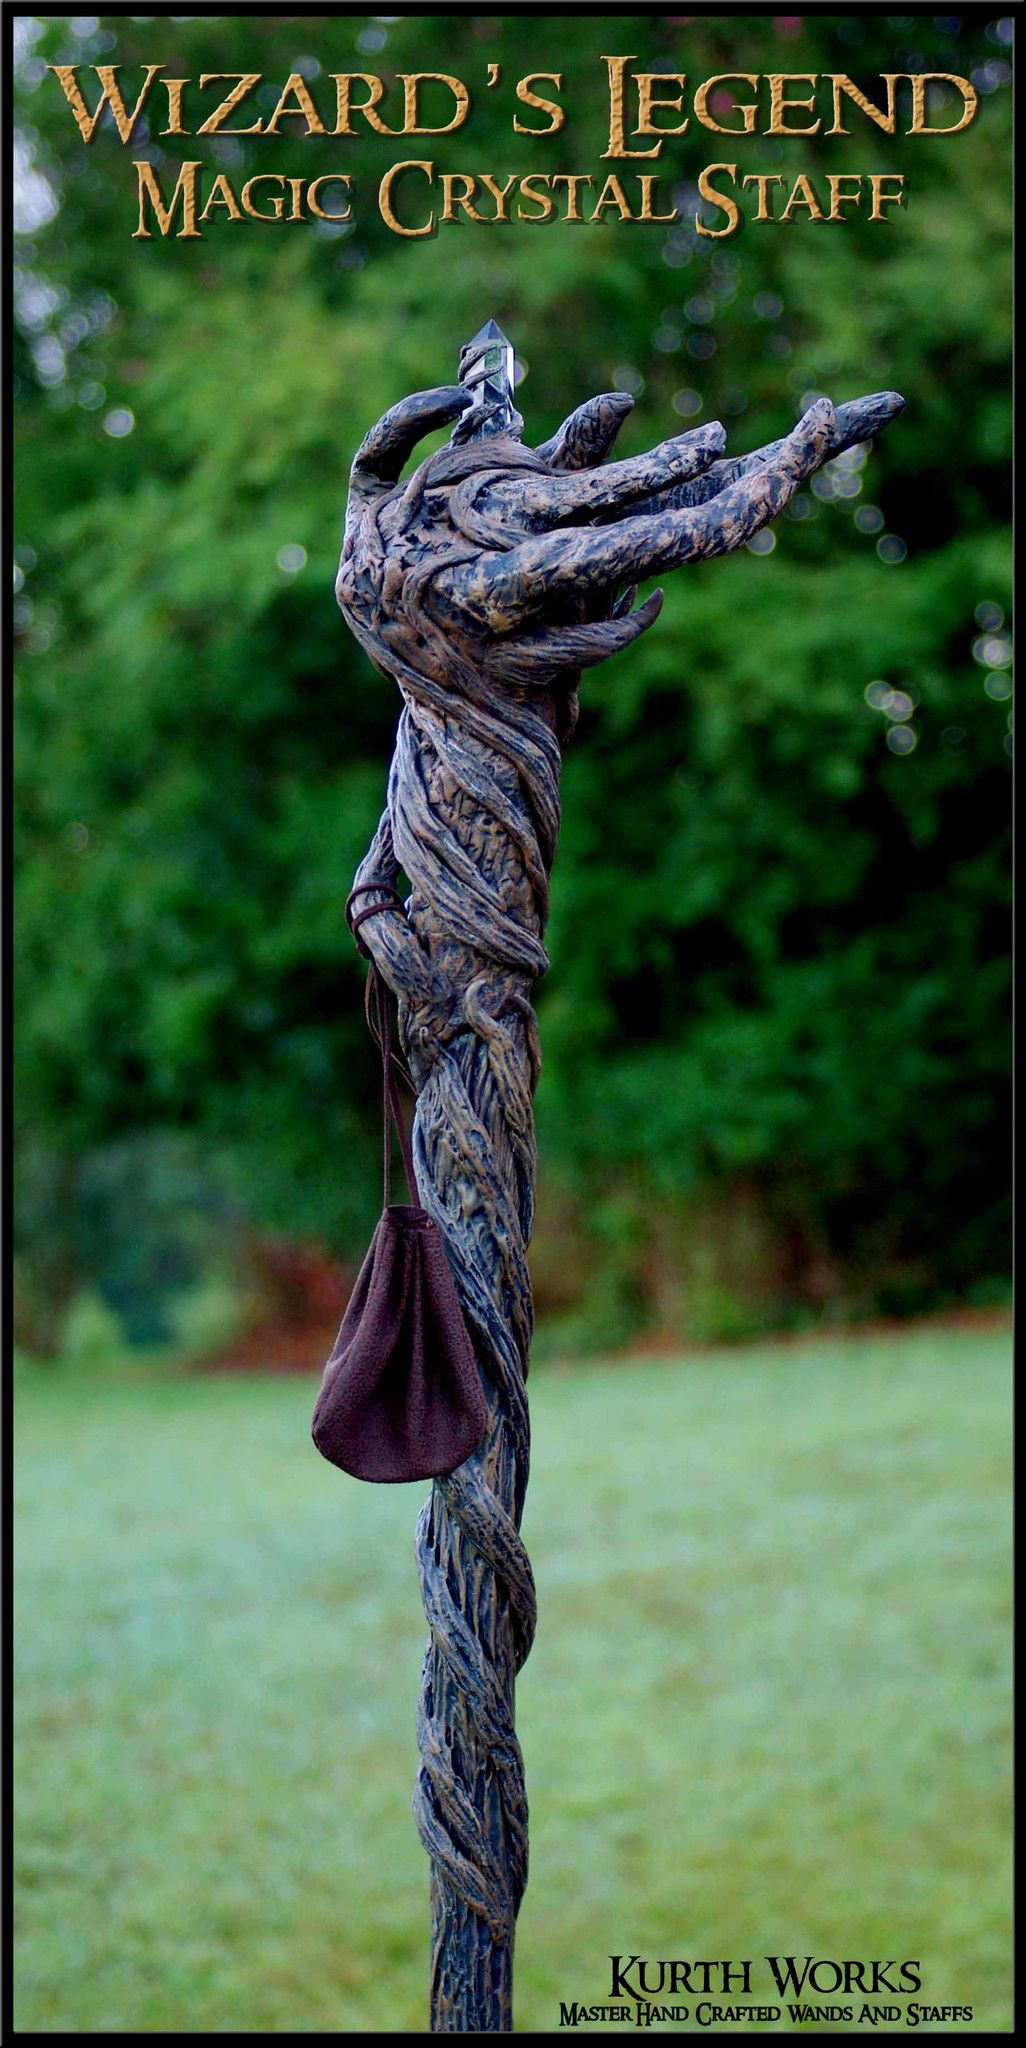 Wooden staff designs kurth works custom hand carved magic wizard wands - Wizard S Legend Crystal Magic Root Staff 2